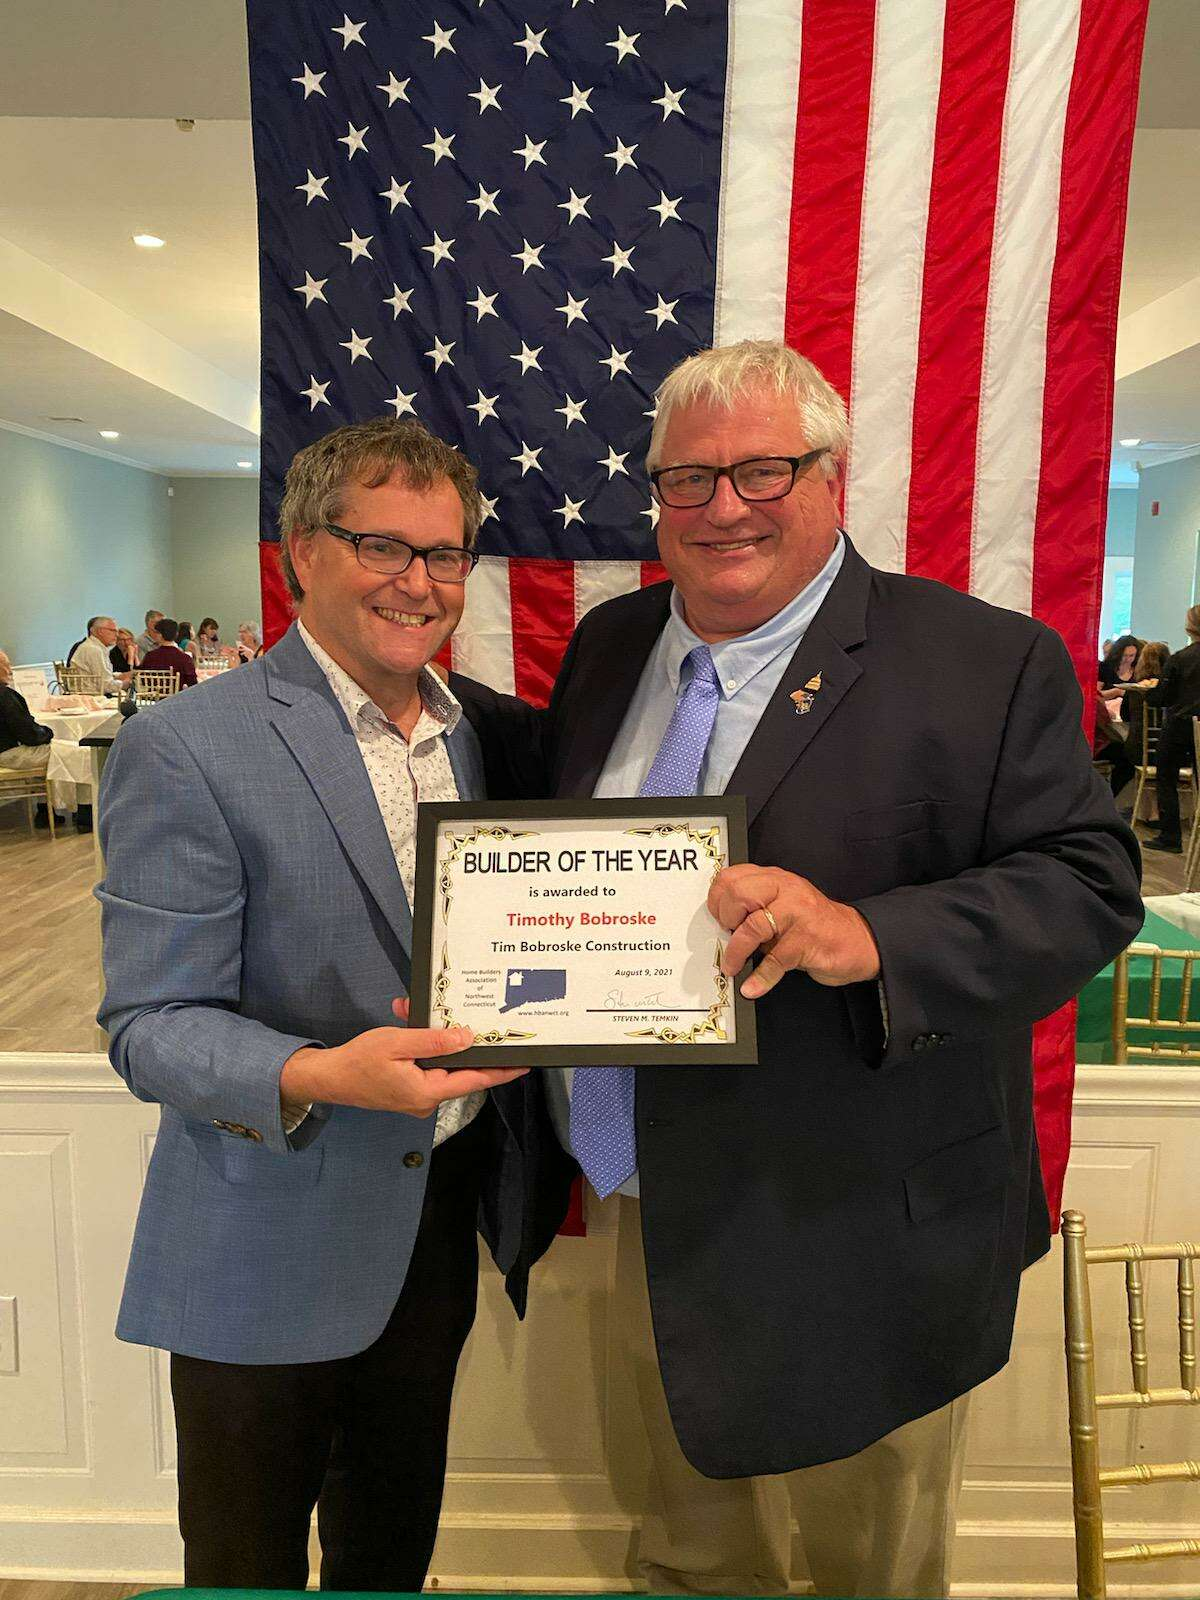 The Home Builder Association of Northwest CT joined the Litchfield County Chapter of the Greater Hartford Association of Realtors to honor Builder of the YearTimothy Bobroske of Tim Bobroske Construction, right, pictured with Steve Temkin.